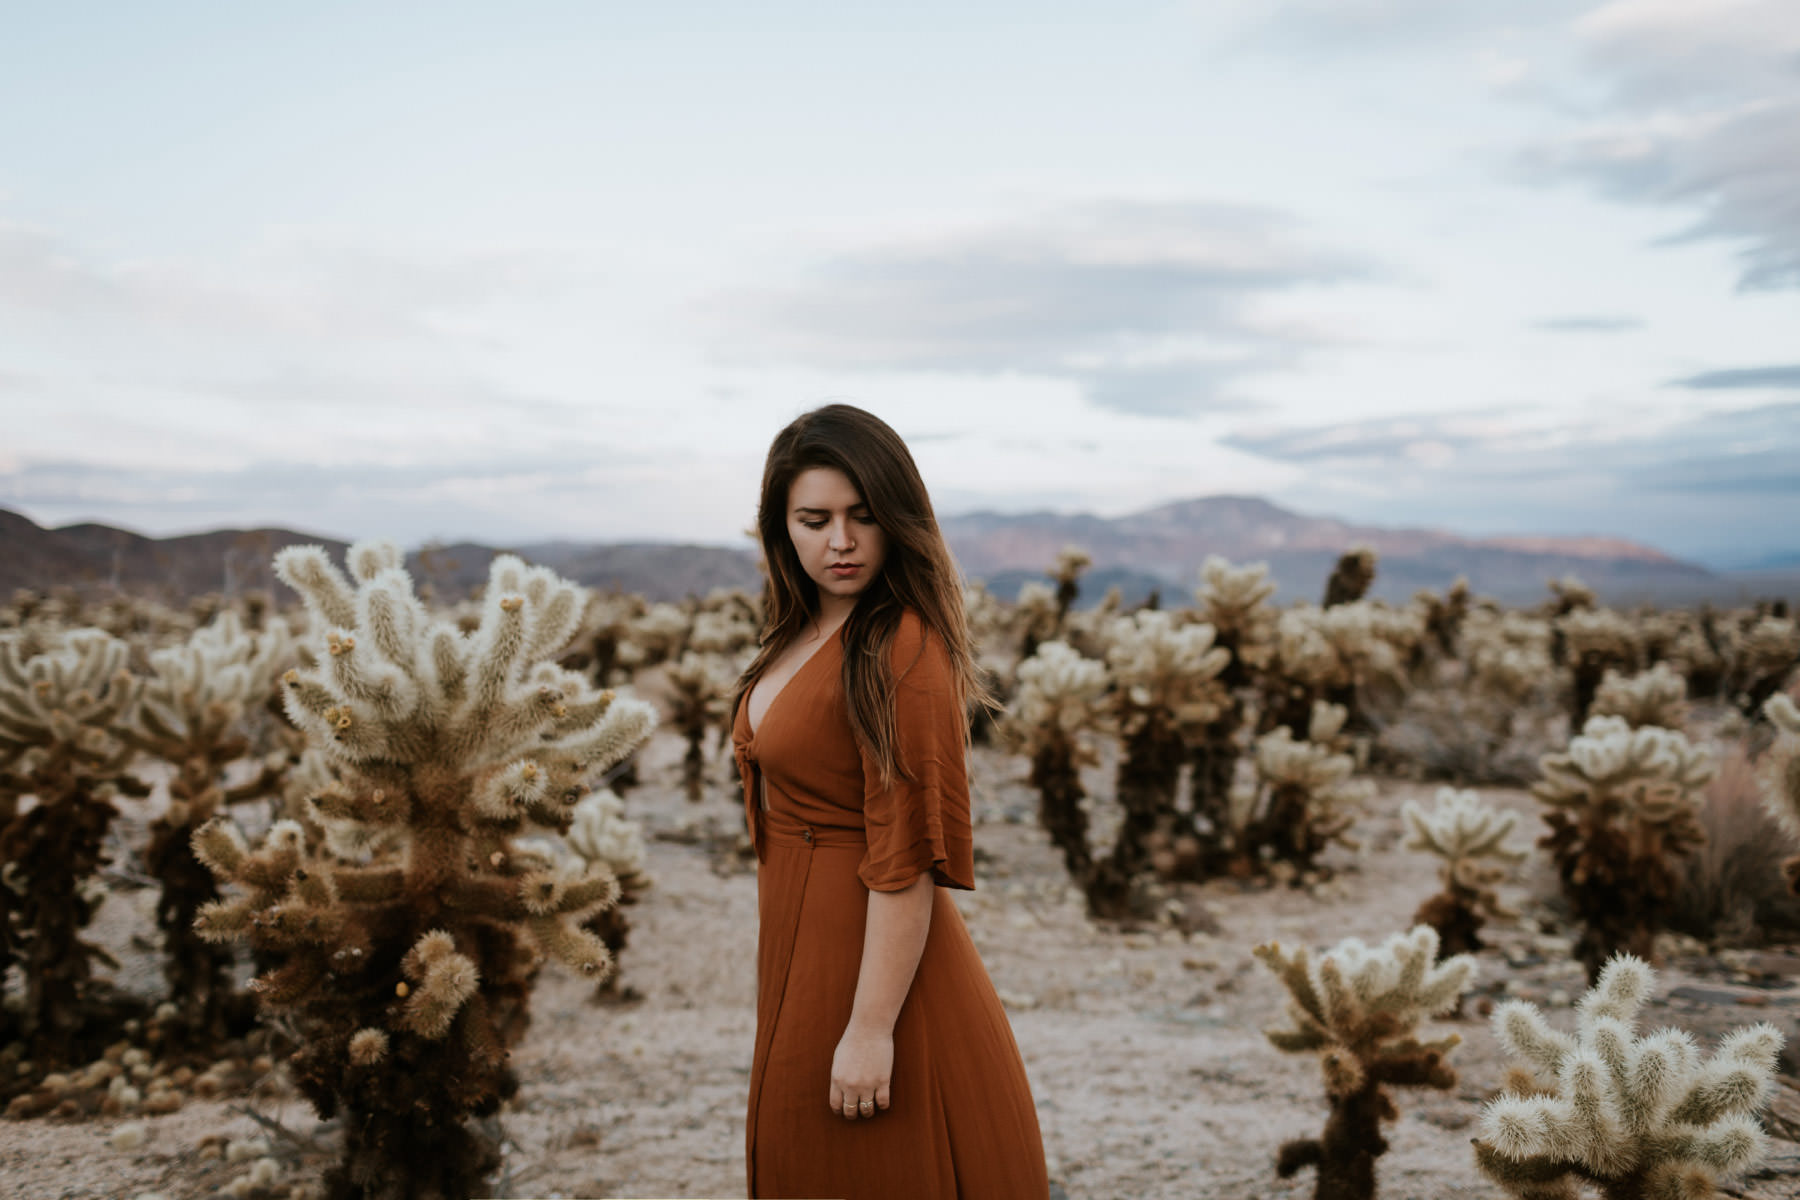 Girl wearing orange maxi dress at Chollas cactus garden in Joshua Tree